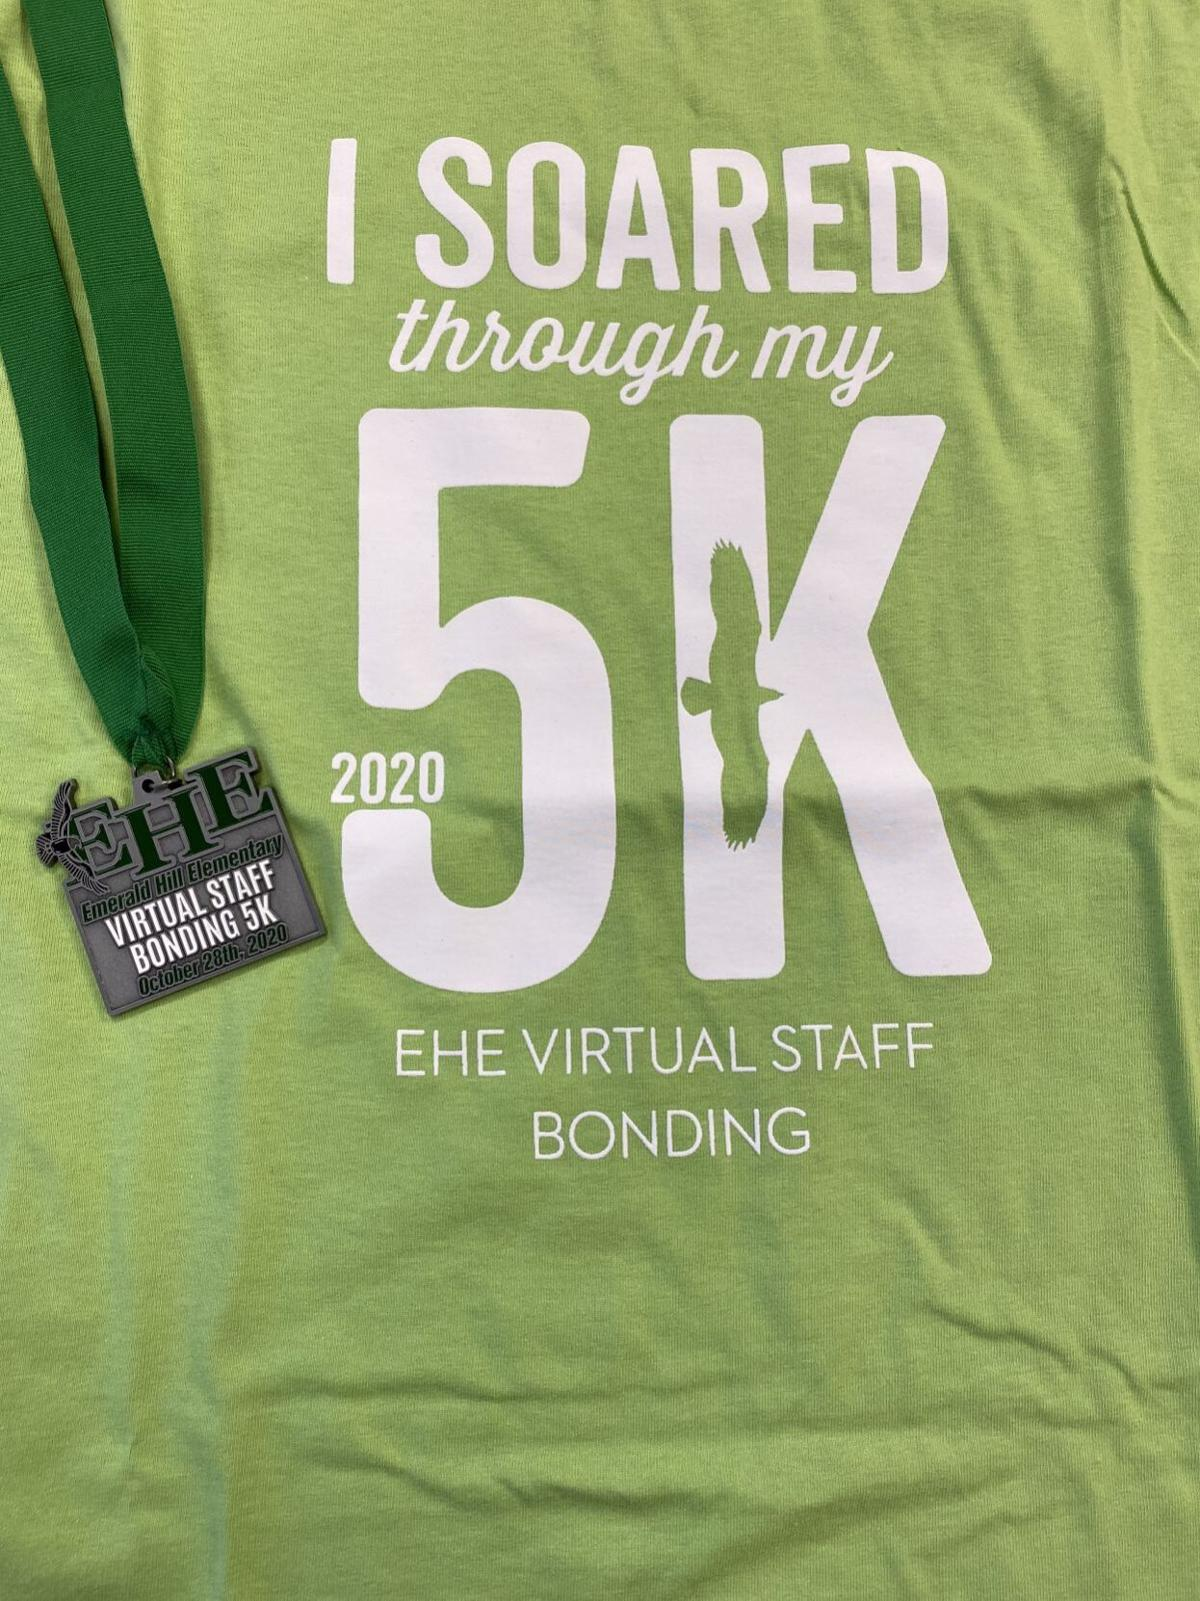 Shirt and medal